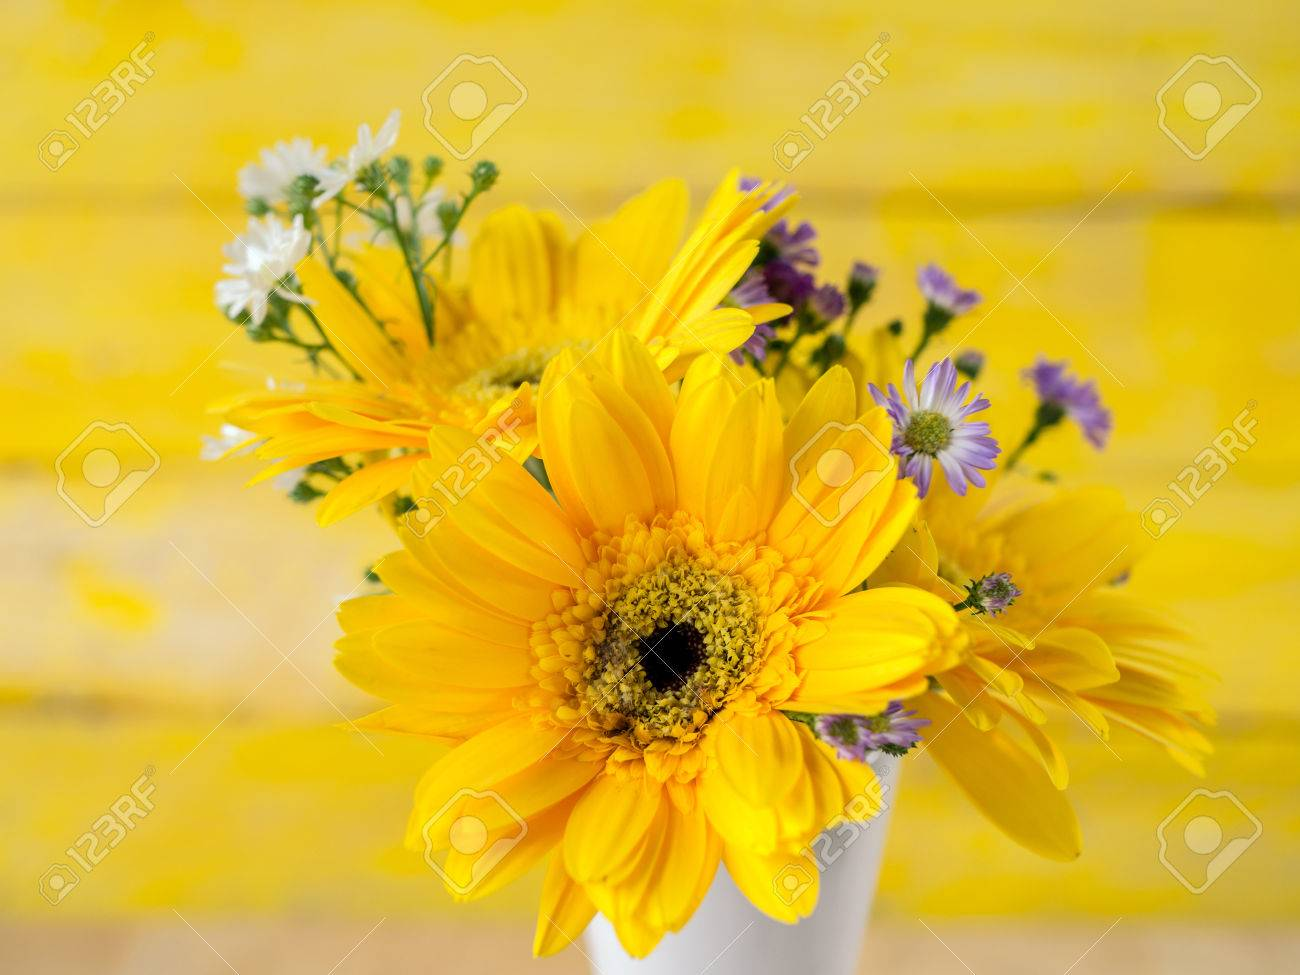 Colorful flowers with colorful backgrounds as well, Love concept, Templates for design. - 82585186